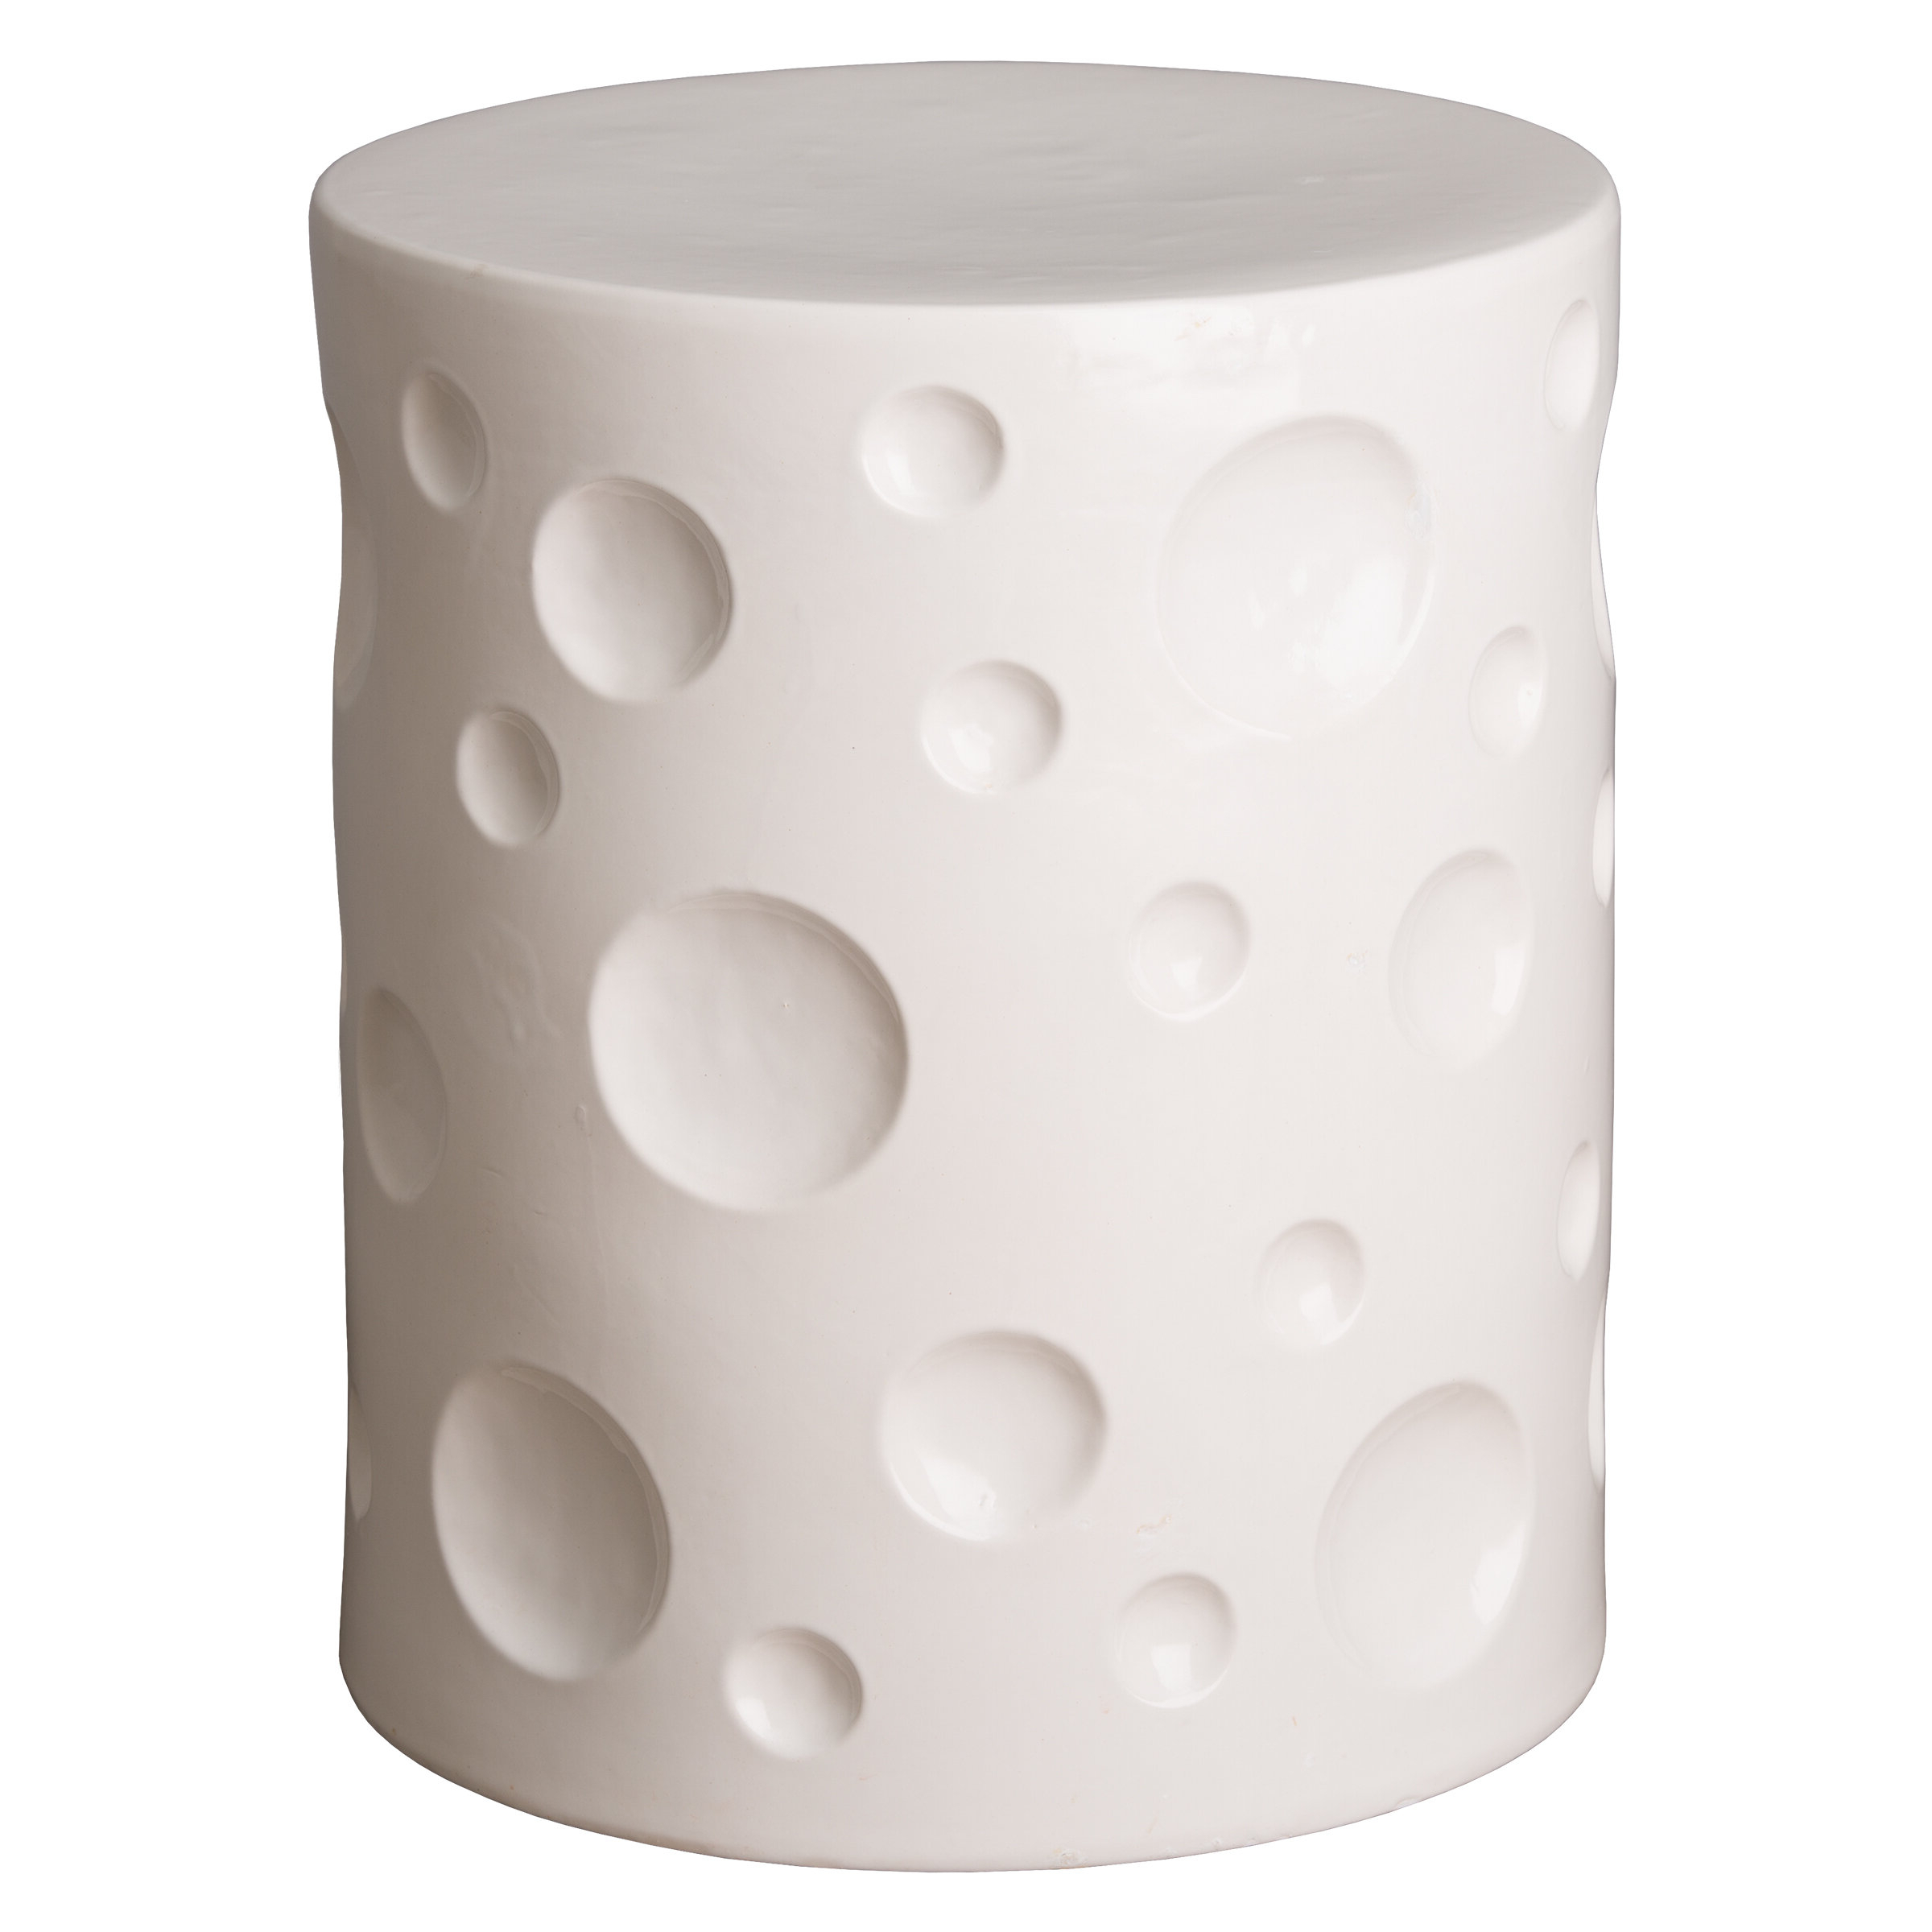 Most Recently Released Chauvigny Crater Garden Stool Inside Jadiel Ceramic Garden Stools (View 21 of 30)